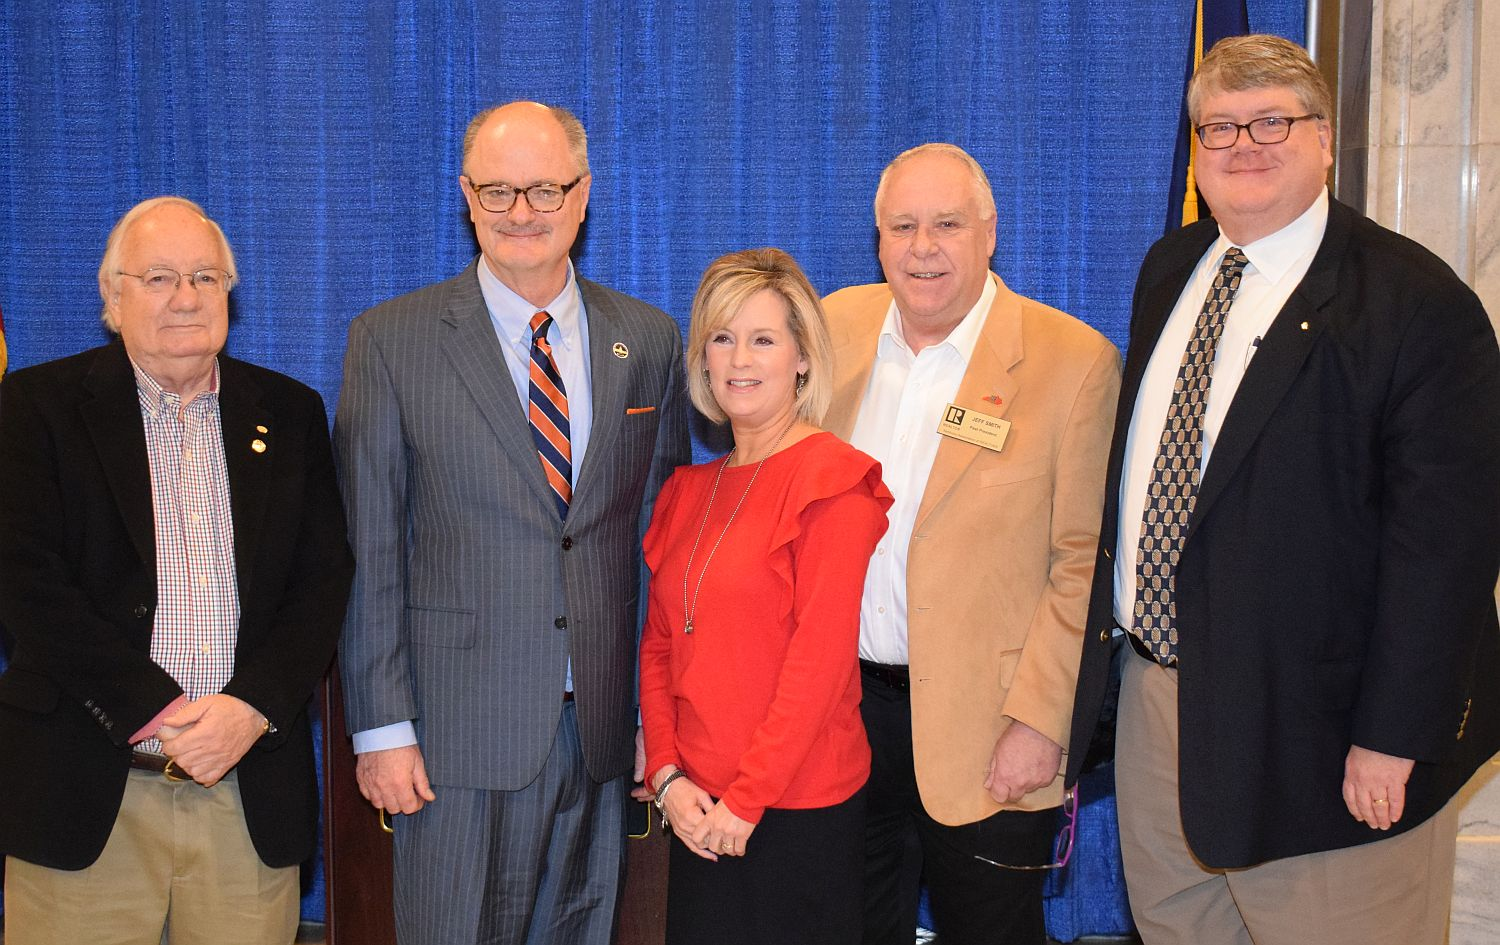 Kentucky REALTORS® recognize John Schickel with its highest legislative award